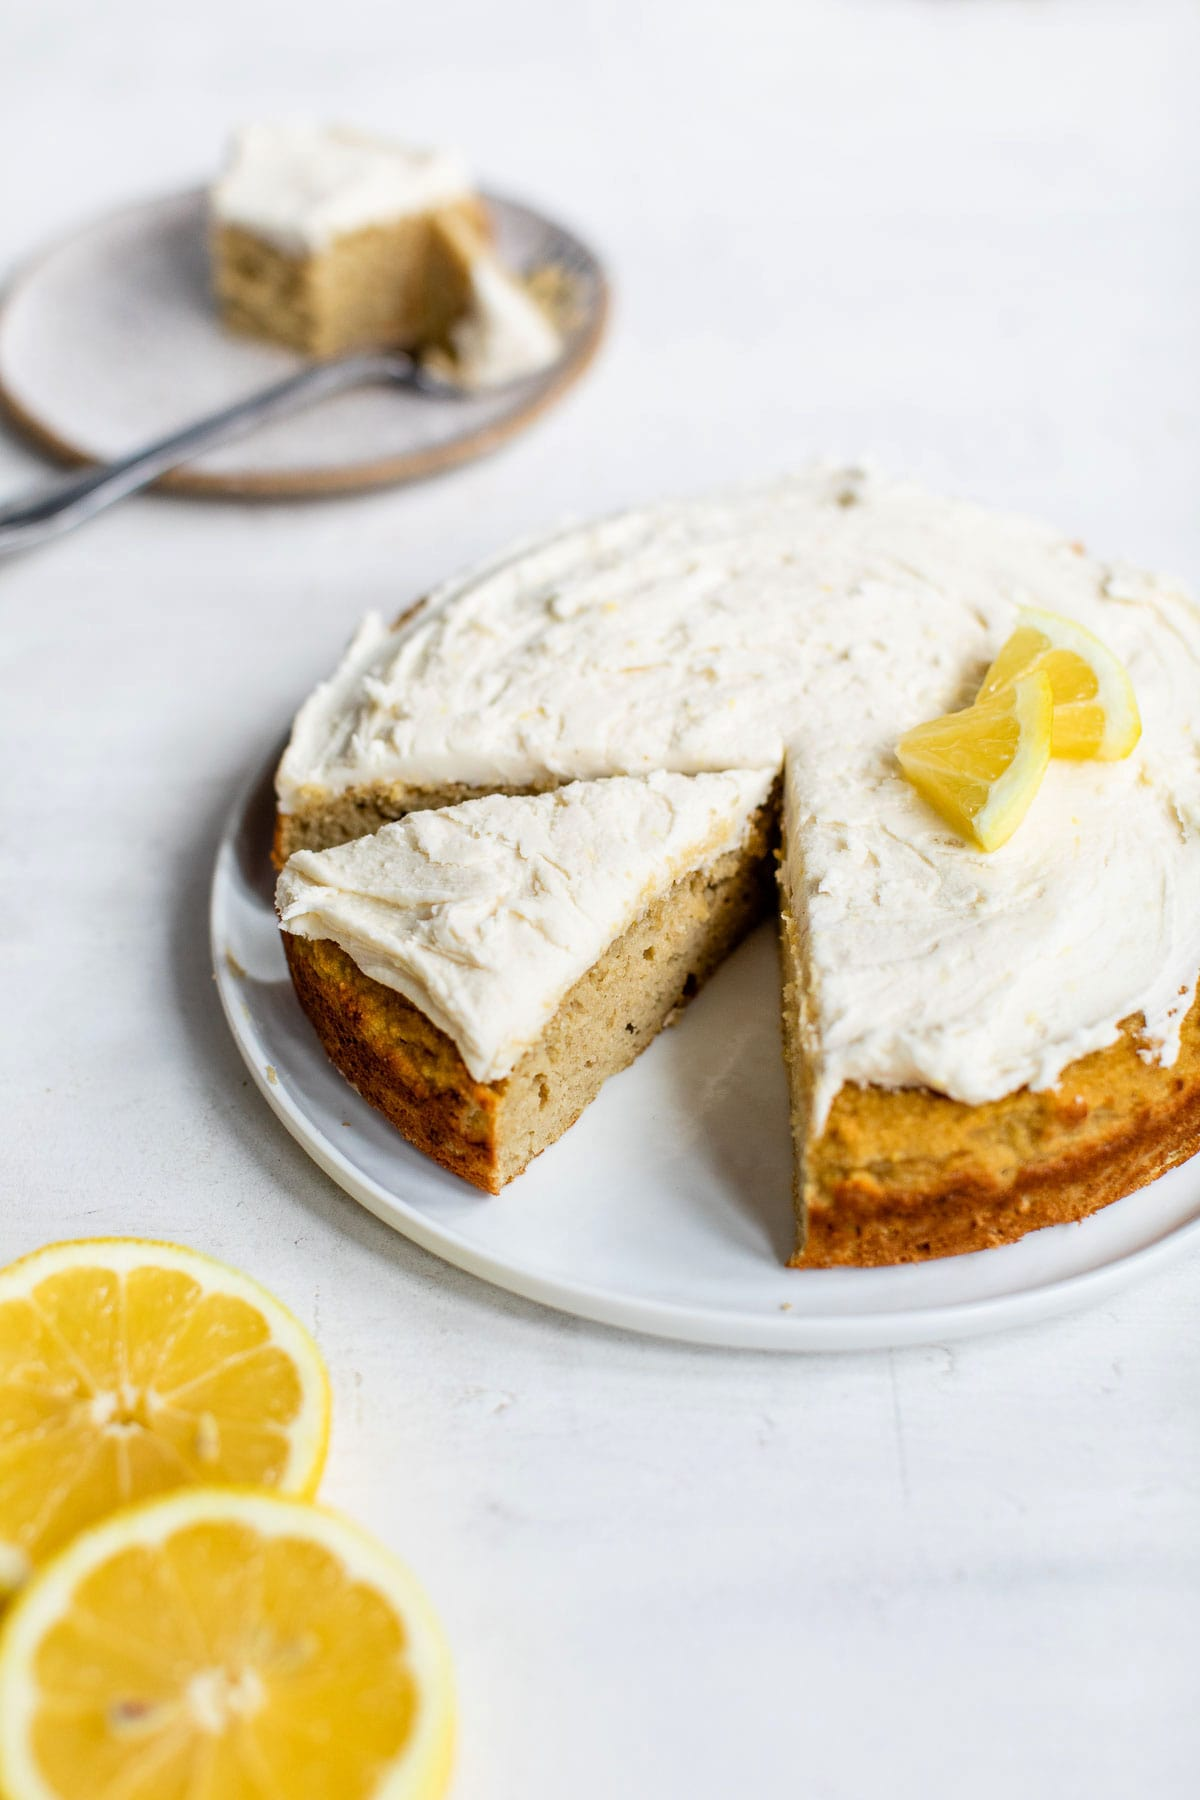 round cake on a plate topped with icing and lemon wedges